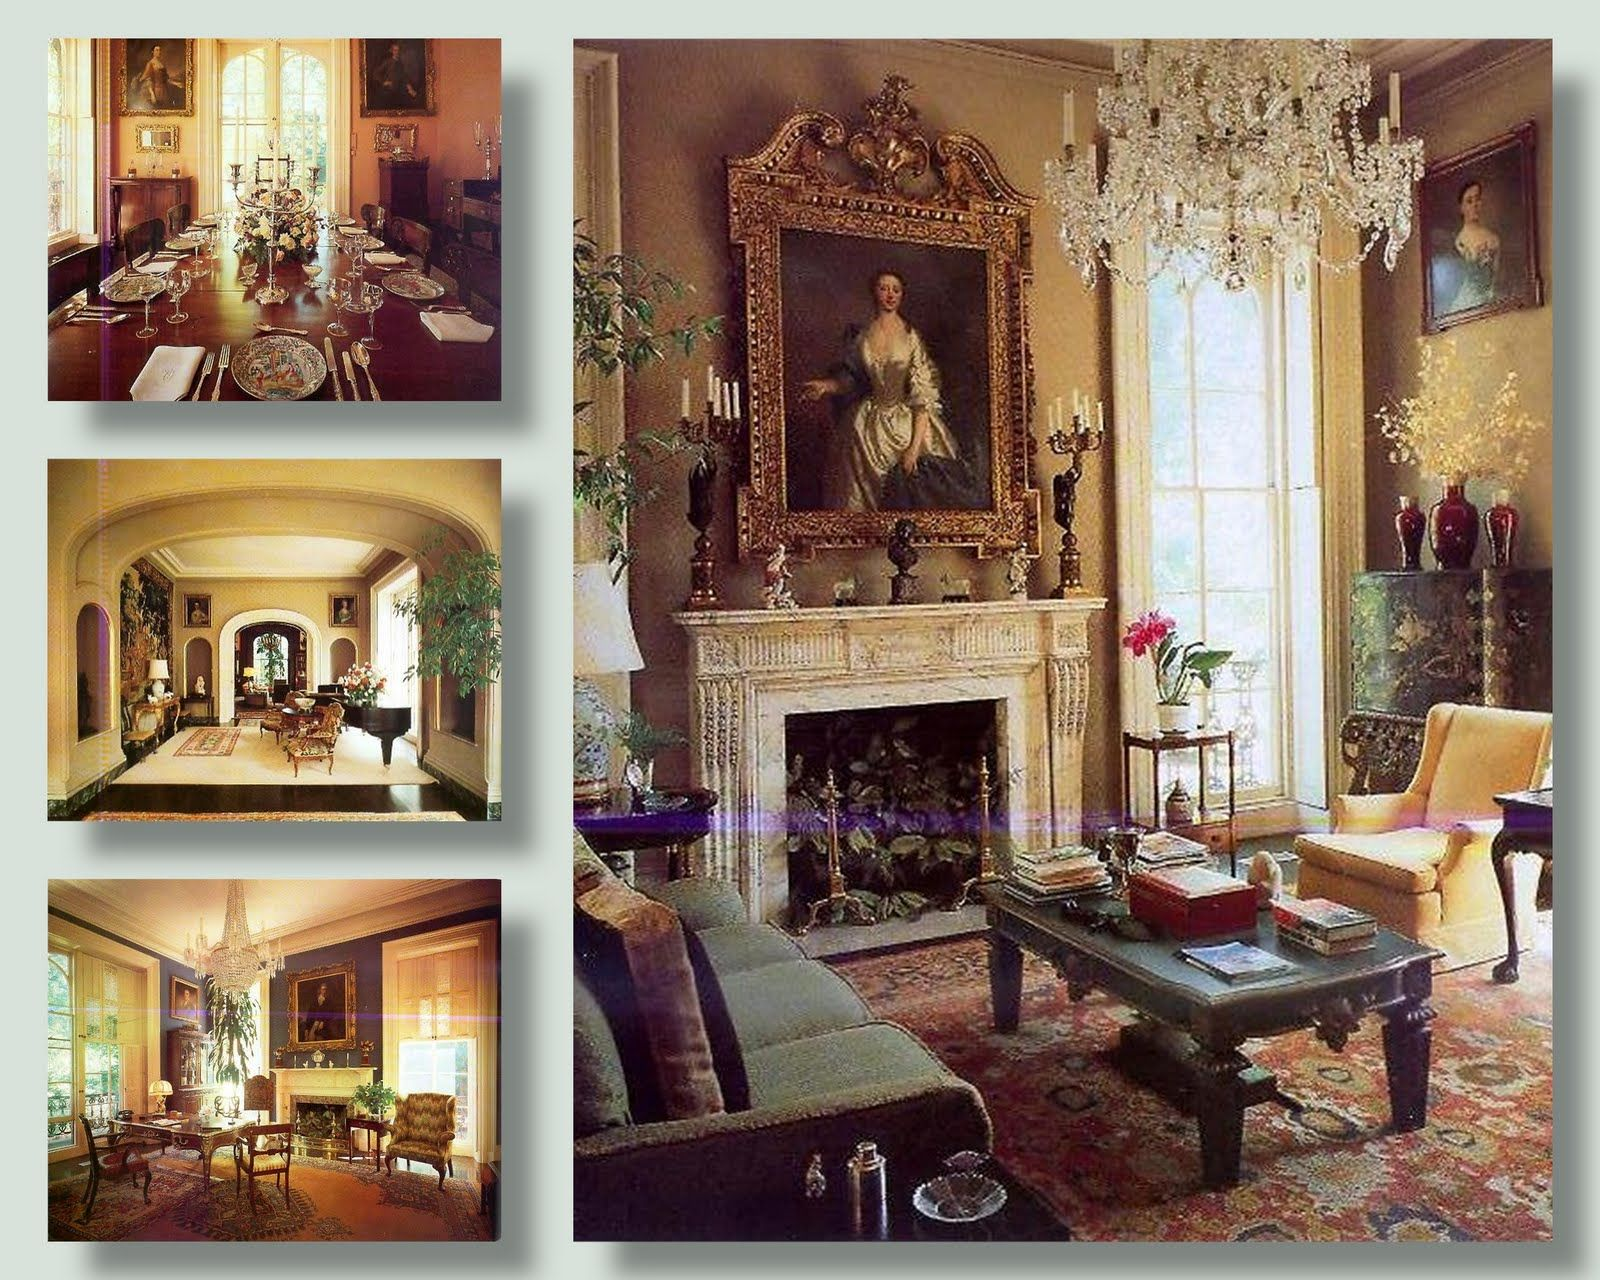 southern mansion interiors recollections of a vagabonde inside victorian homes